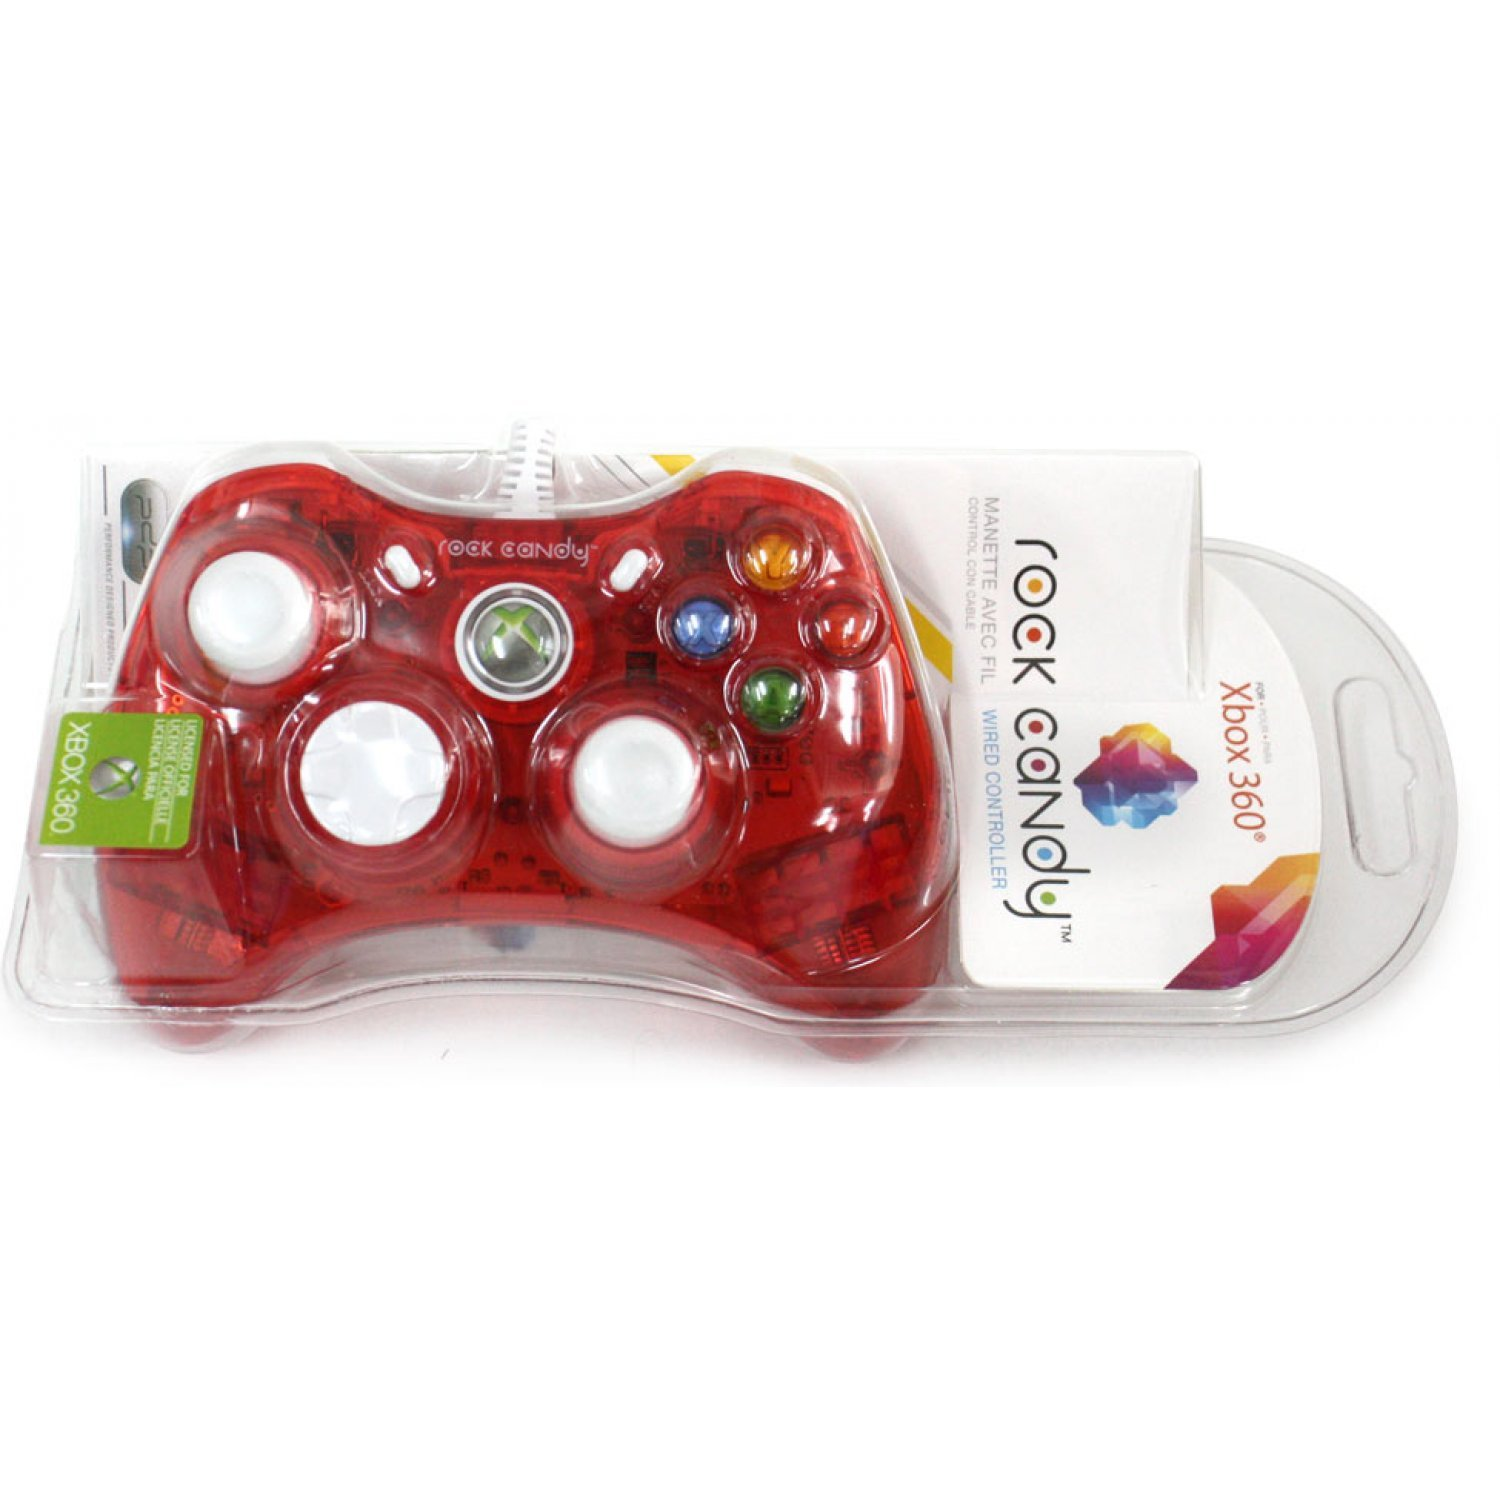 Rock Candy 360 Controller Driver Download